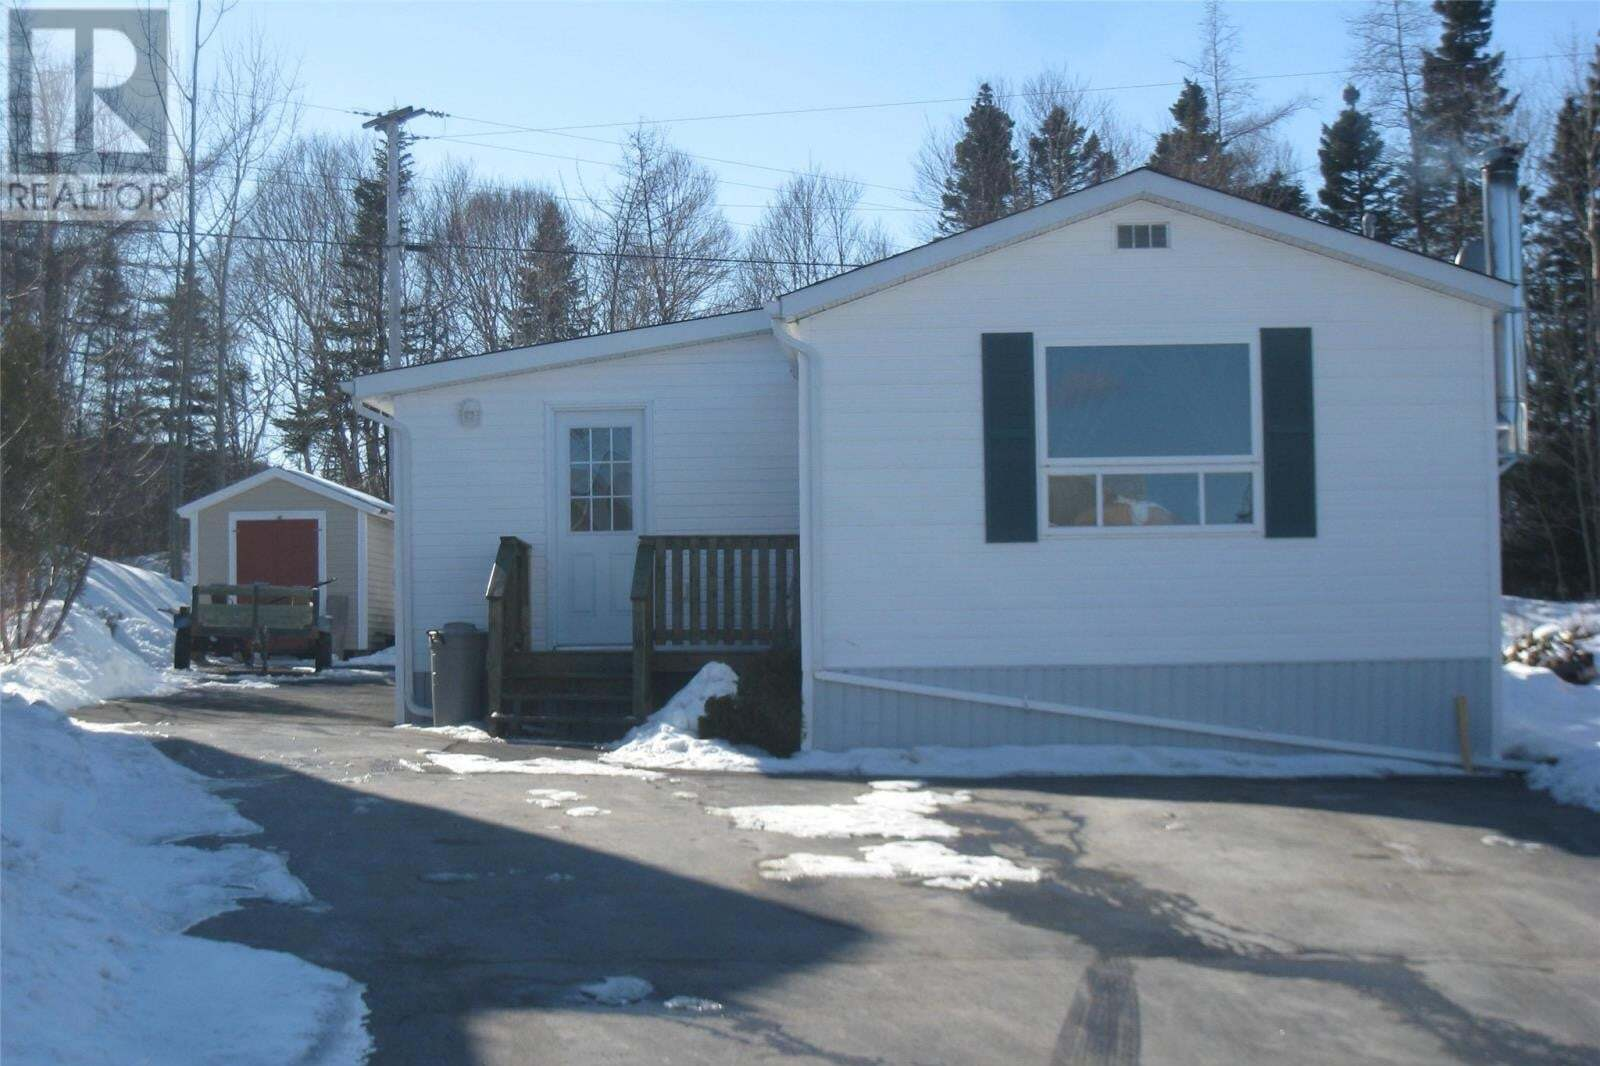 Home for sale at 55 High Birchy Cres Clarenville Newfoundland - MLS: 1211978